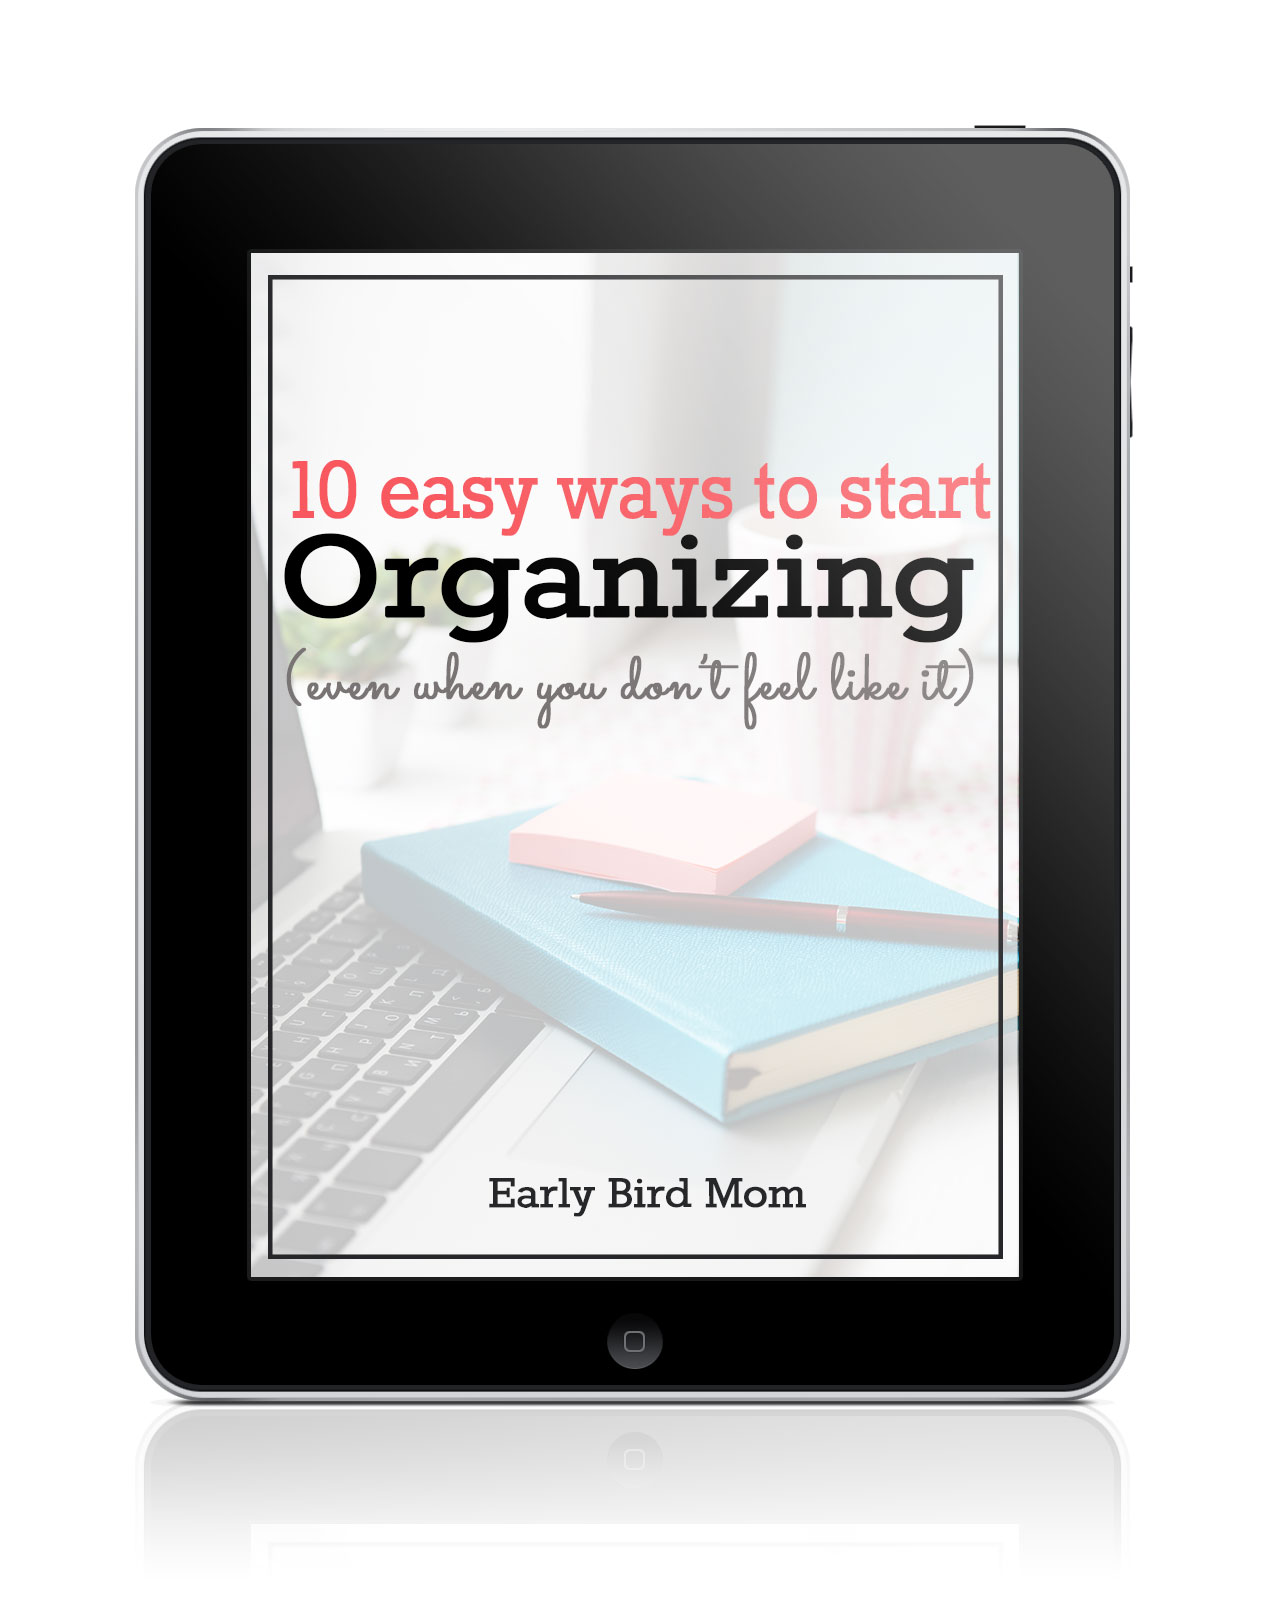 10 Easy Ways to Get Started Organizing (even when you don't feel like it)